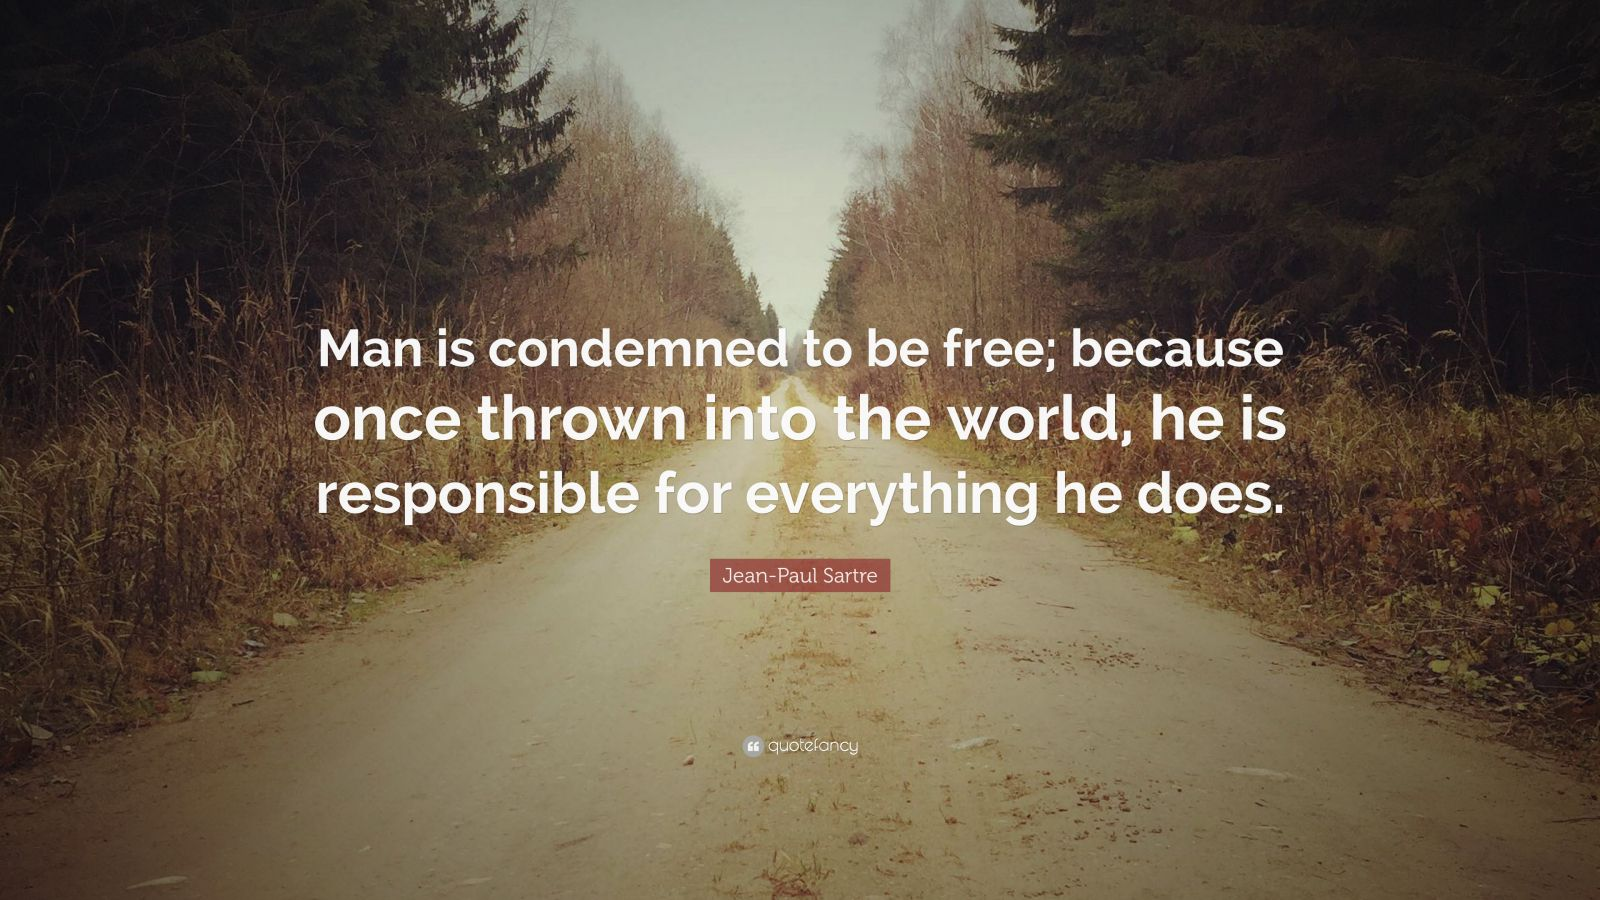 What does Sartre mean by saying that we are condemned to be free?